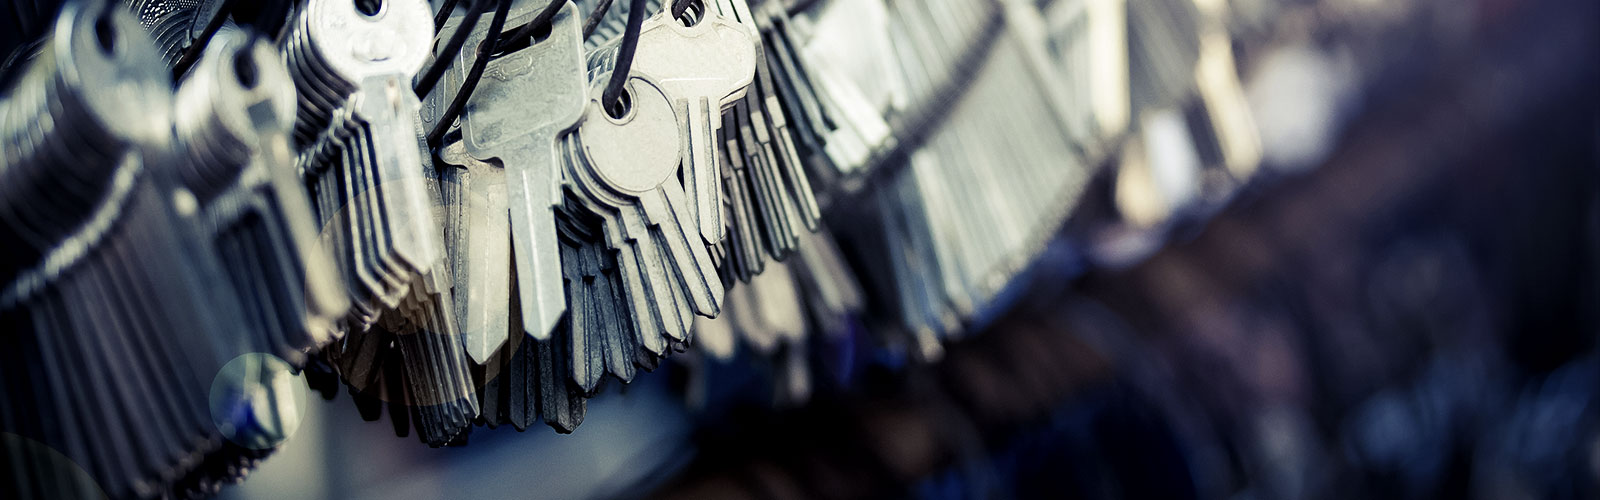 Green Bay: Commercial Locksmith, Emergency Locksmith and Key Replacement